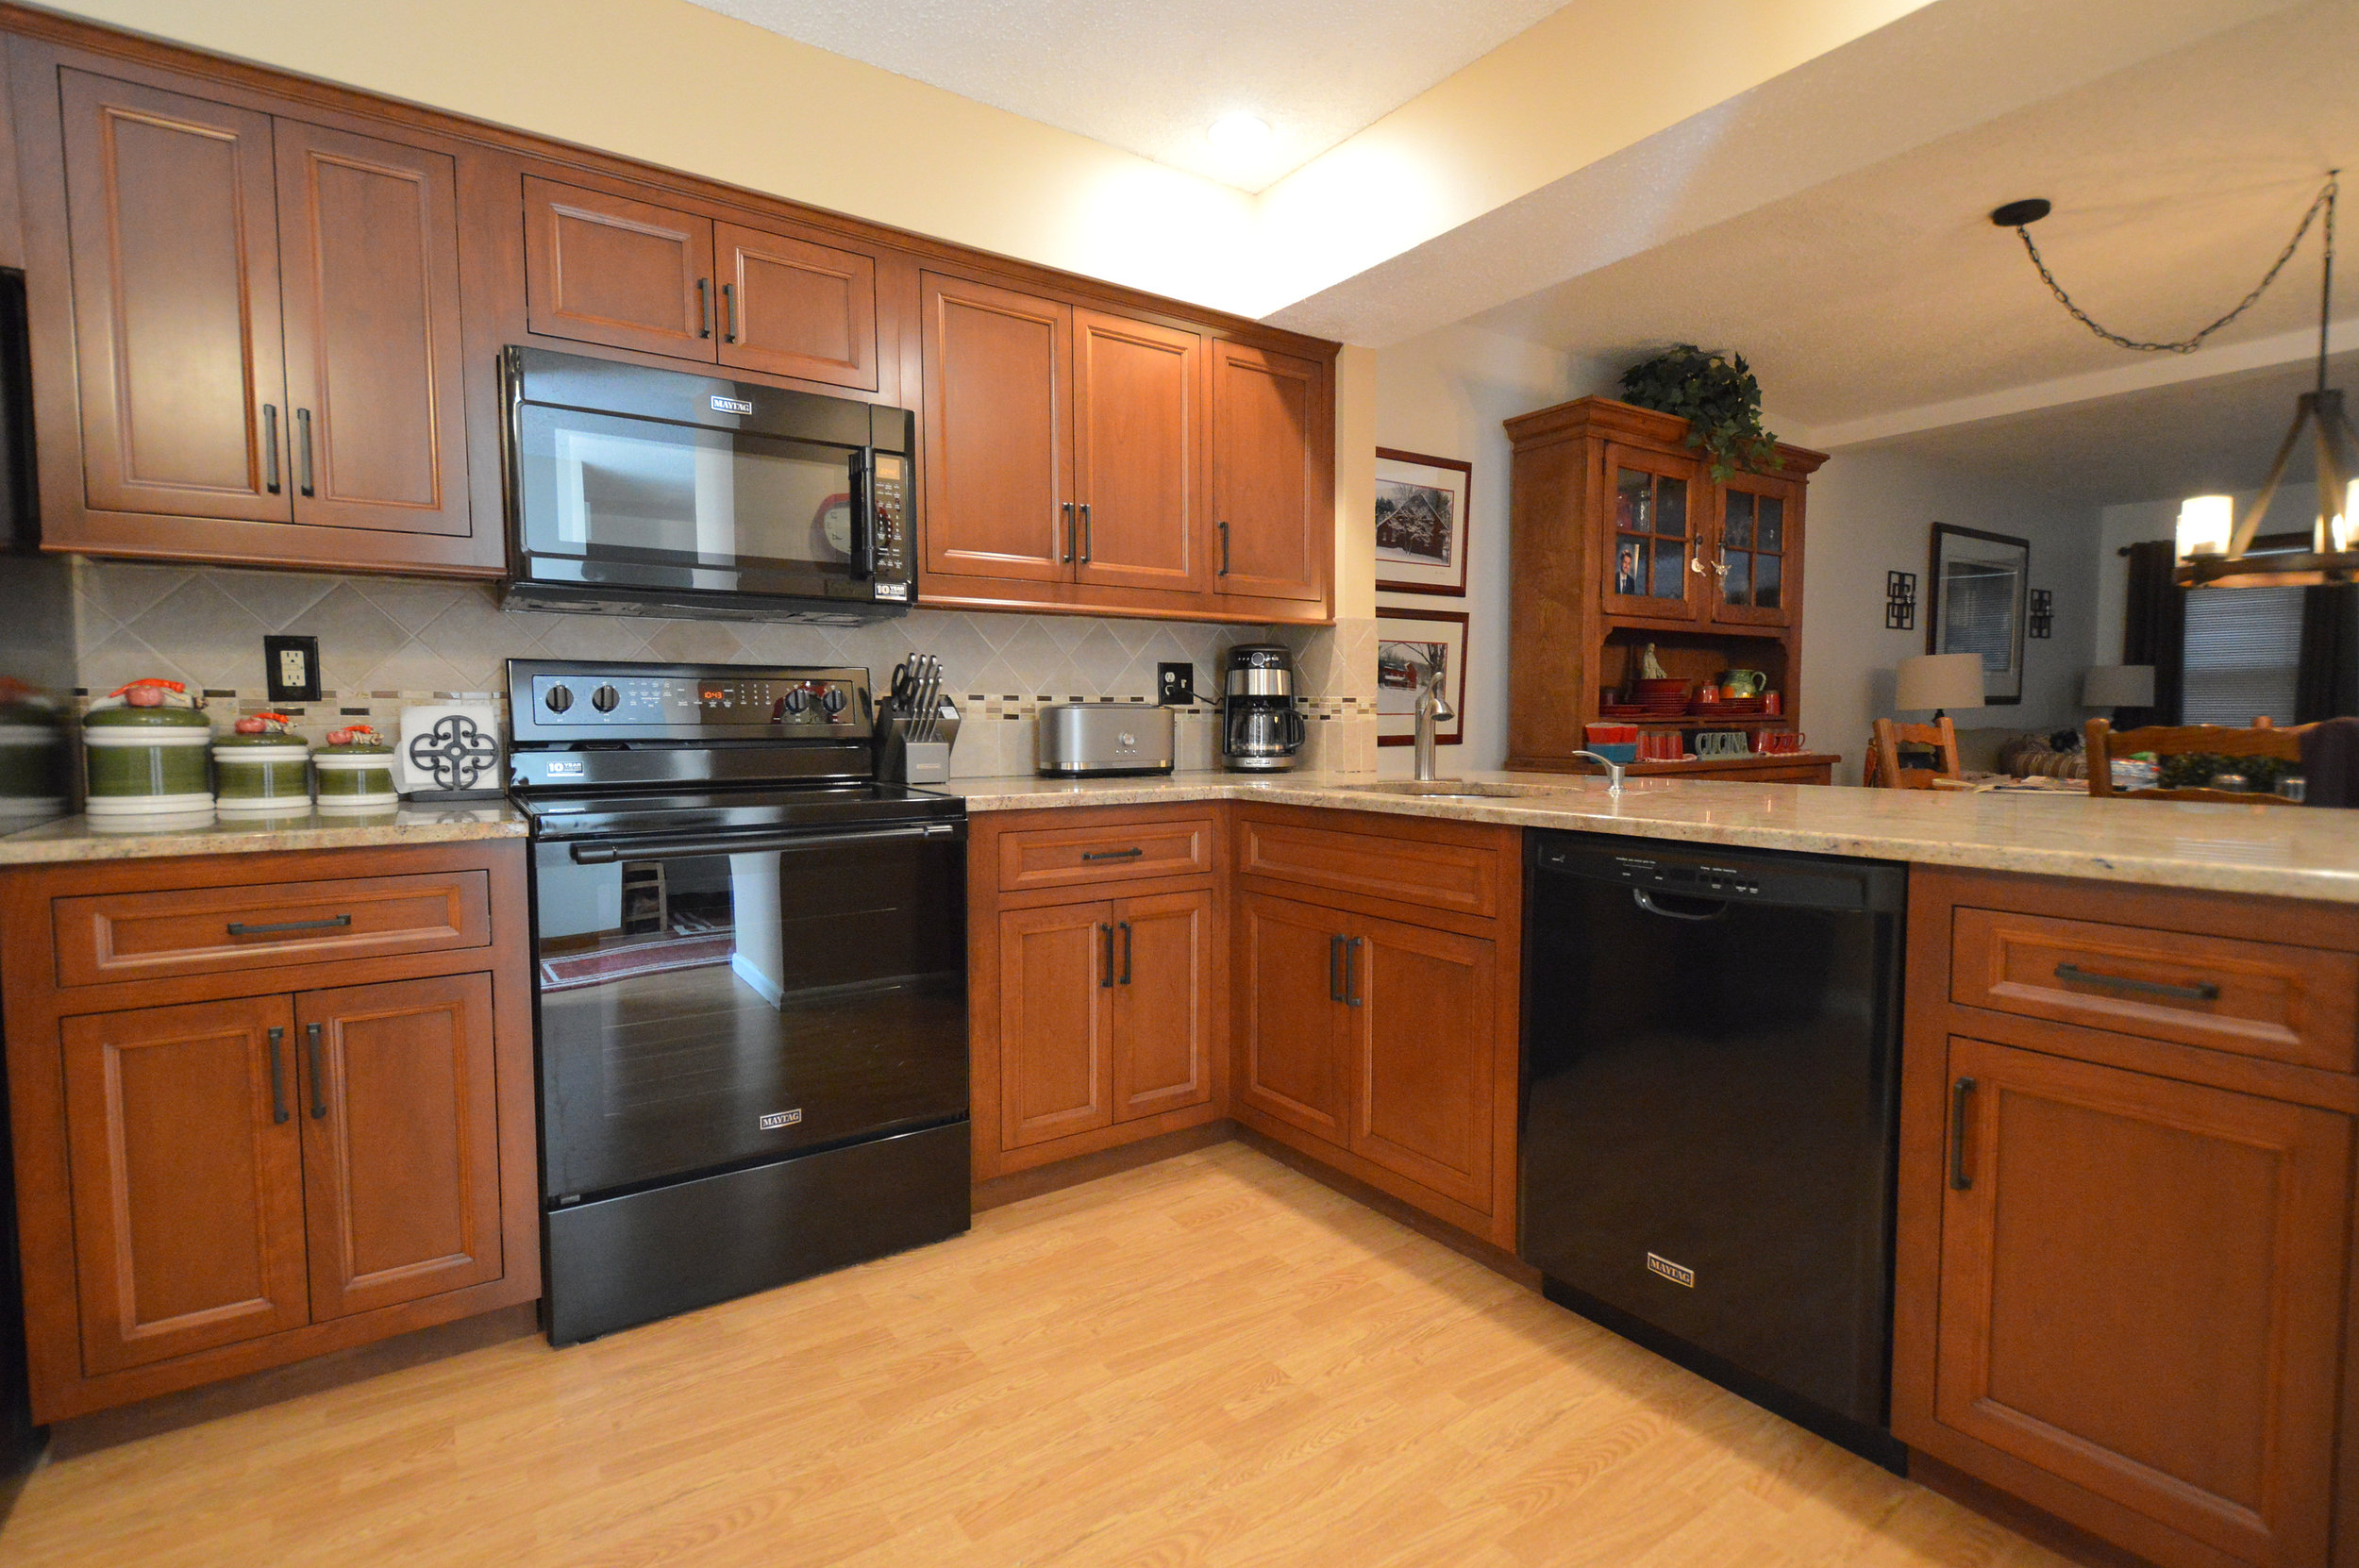 02-Ackley Cabinet - Custom Cherry Inset Cabinets.JPG